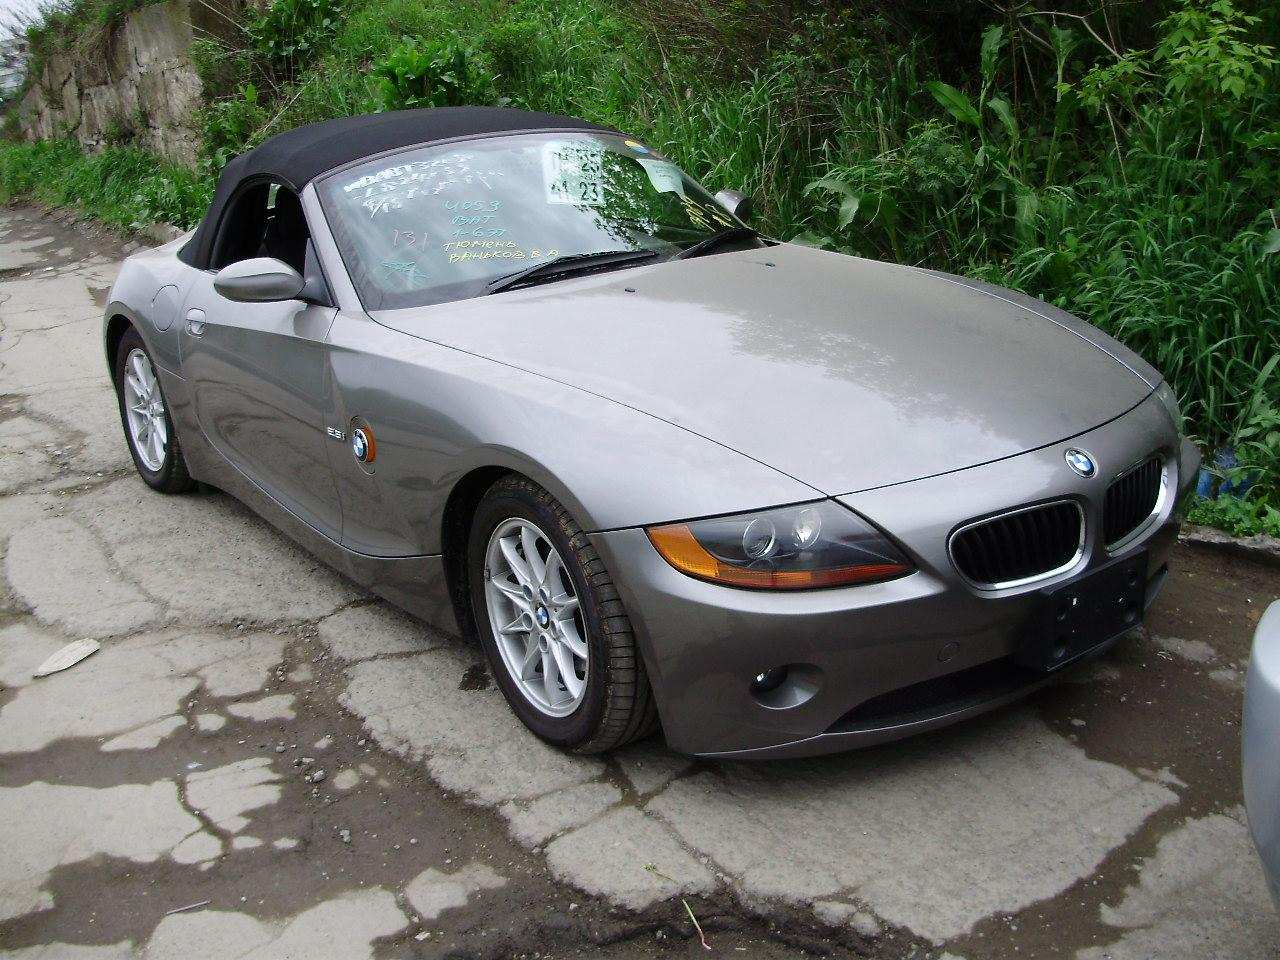 2004 Bmw Z4 Photos 2 5 Gasoline Fr Or Rr Automatic For